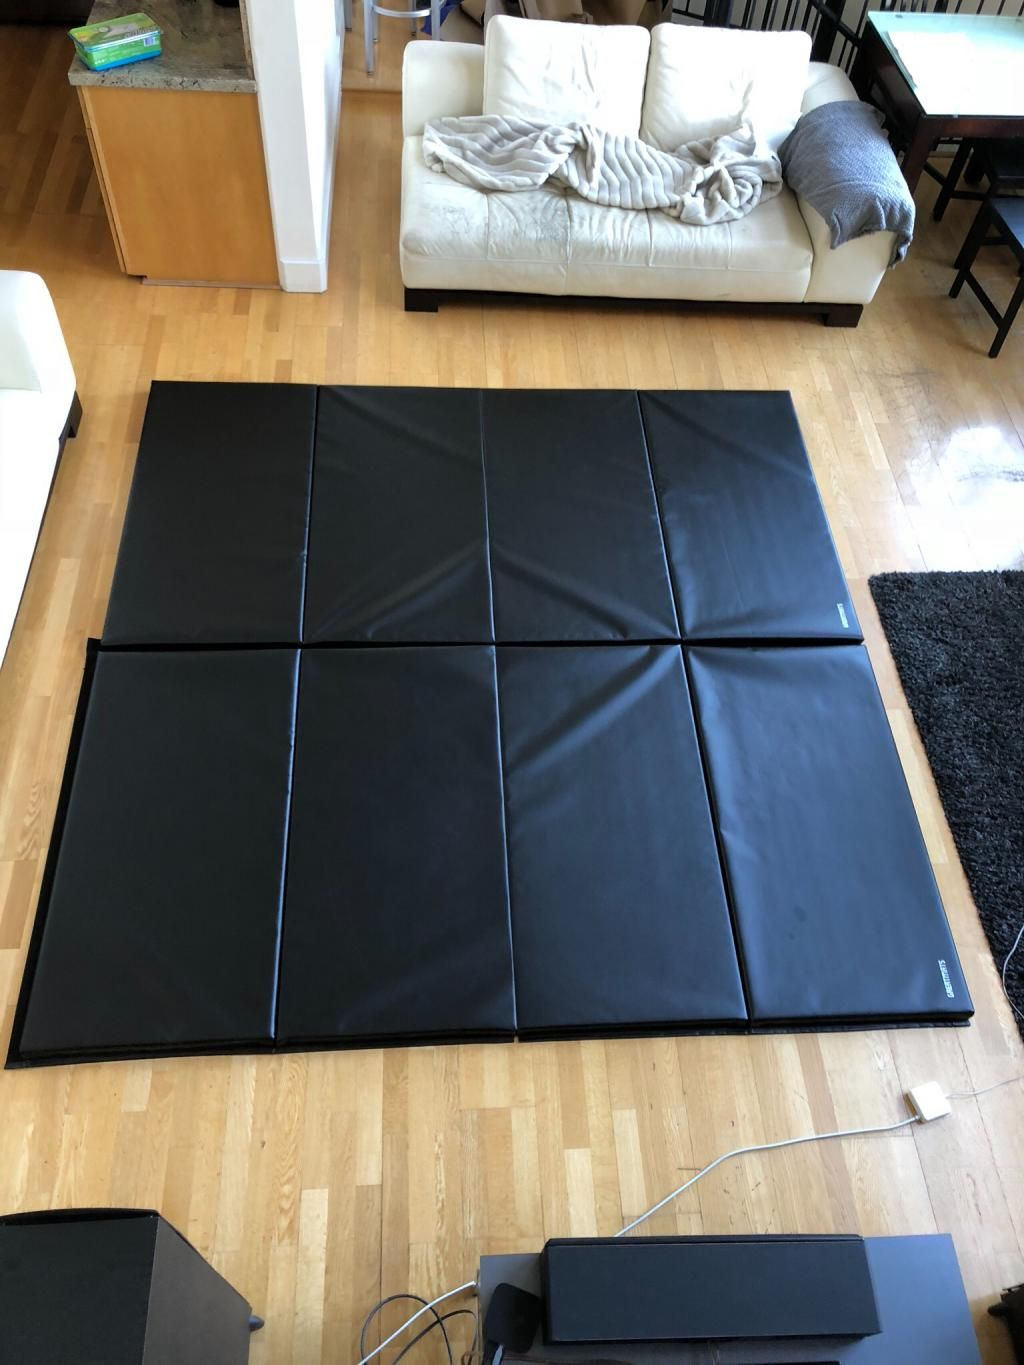 Tumbling Blue Black Gym Mat 4x8 Ft X 2 Inch Folding Gym Mat In 2020 Gym Mats Folding Gym Mat Gymnastics Mats